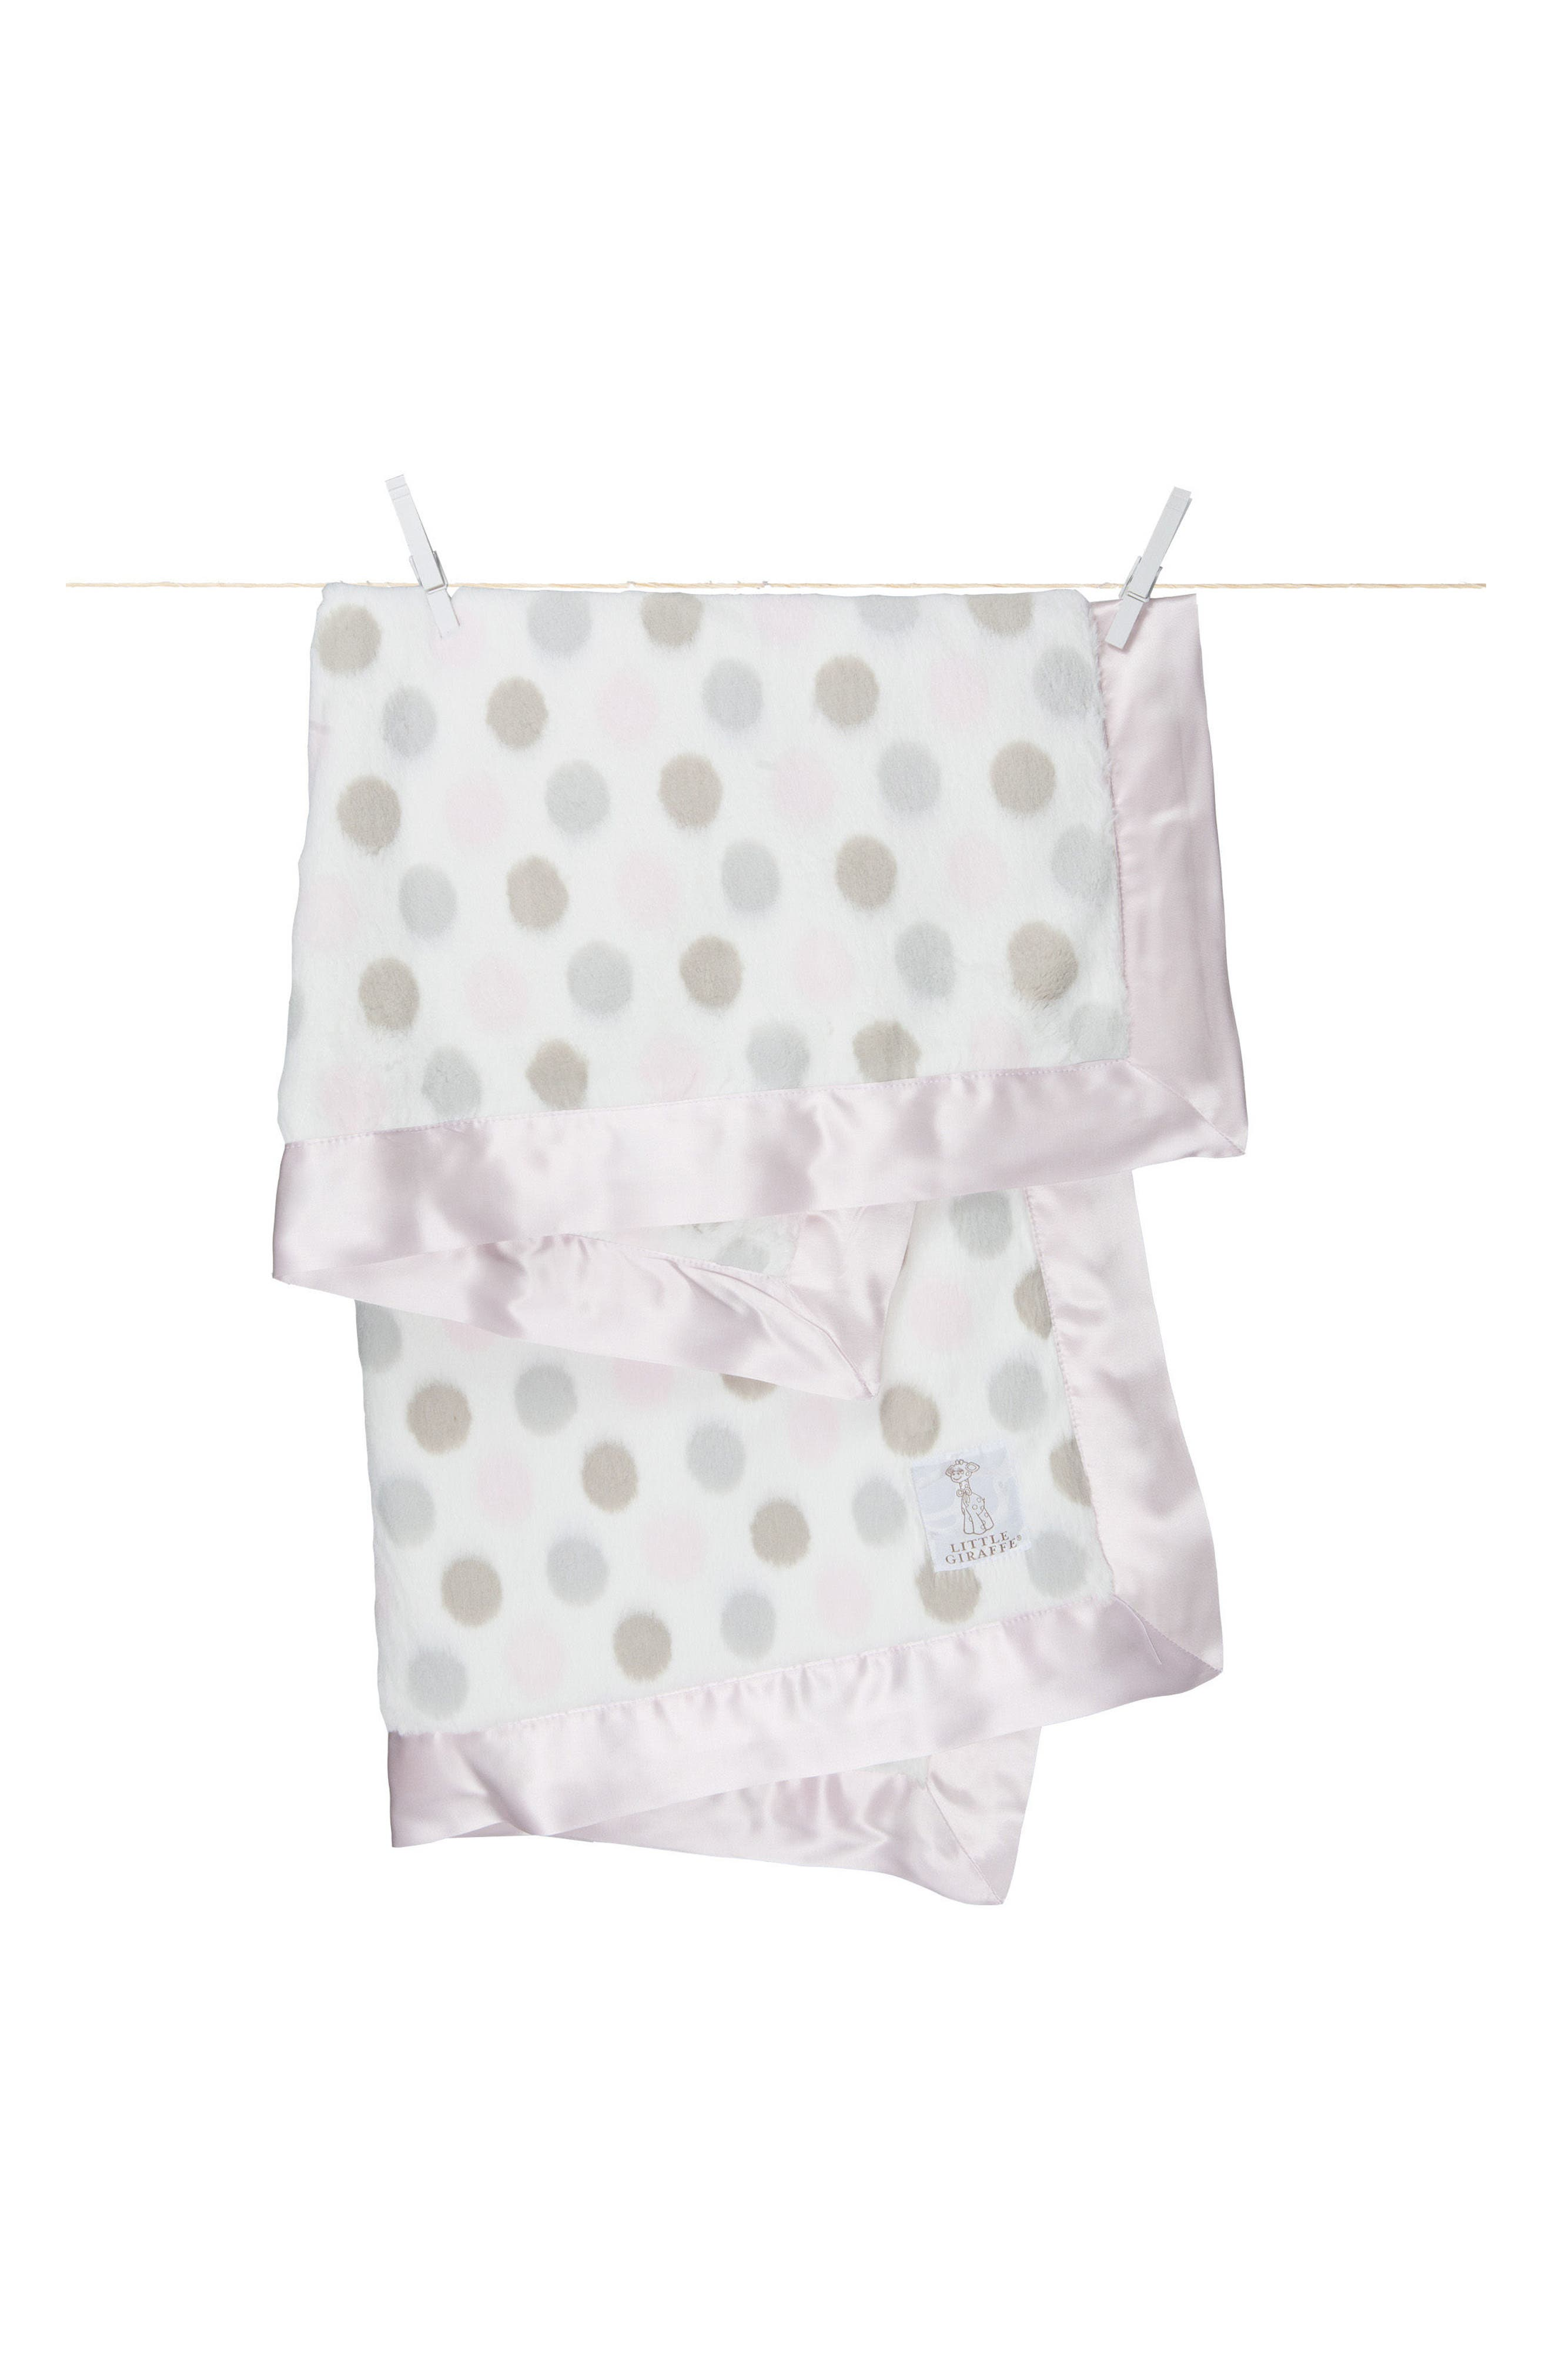 'Luxe Dot' Blanket,                         Main,                         color, Pink